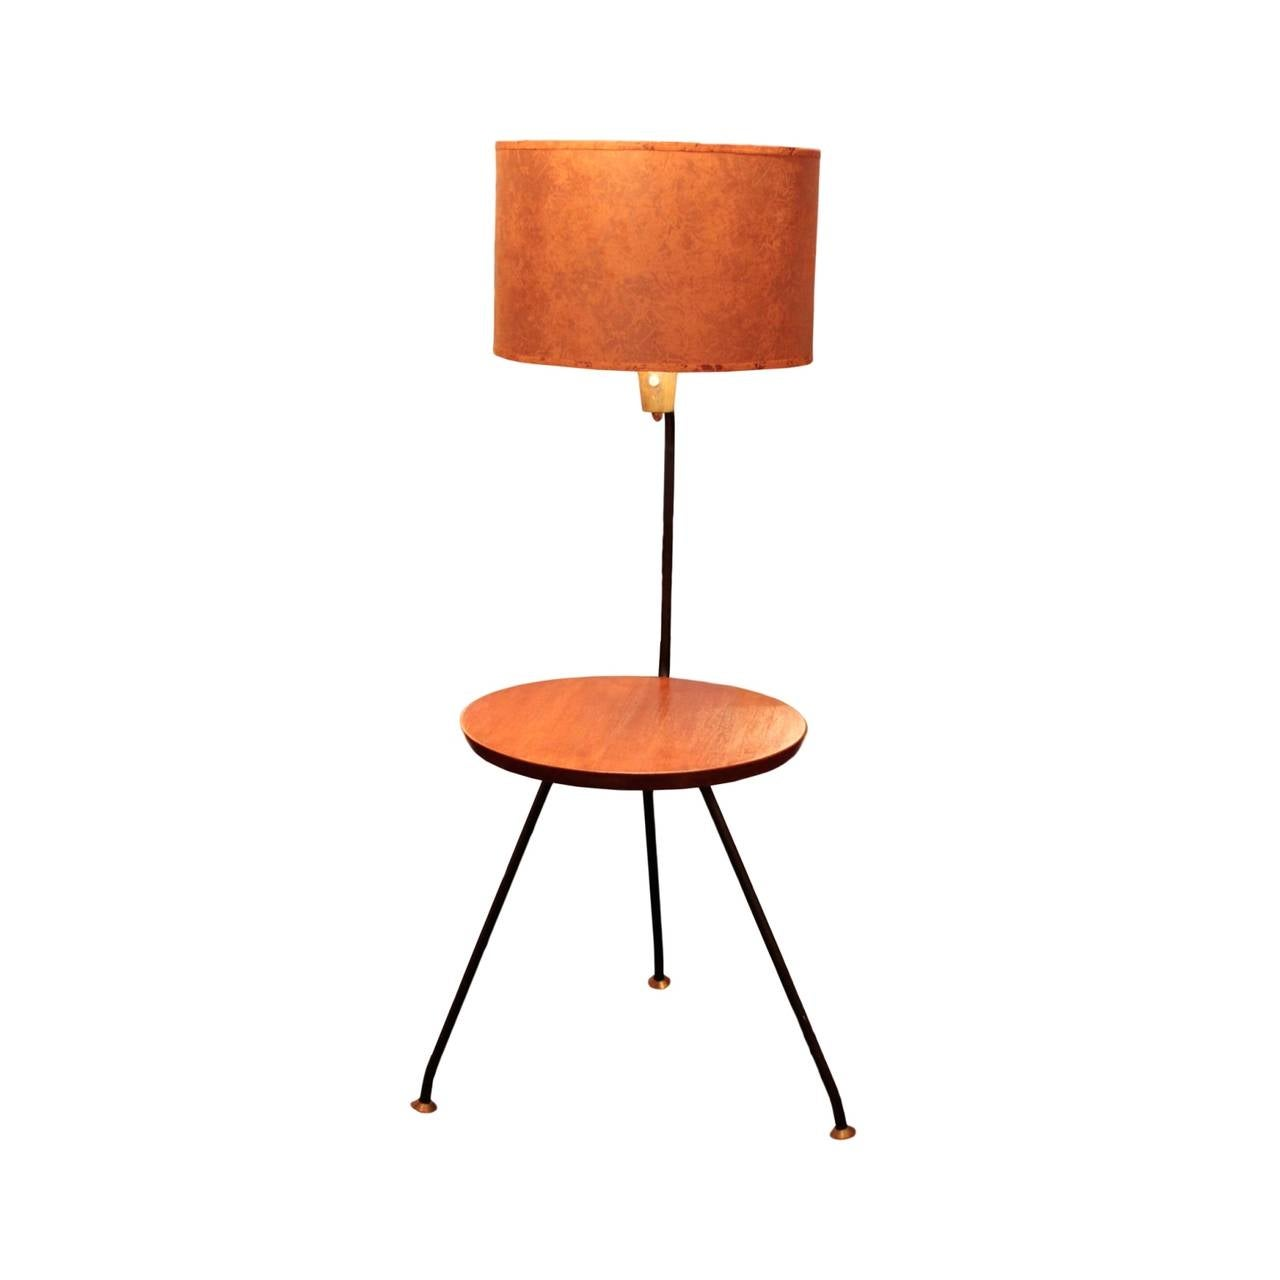 American Mid Century Modern Lamp With Table By Luther